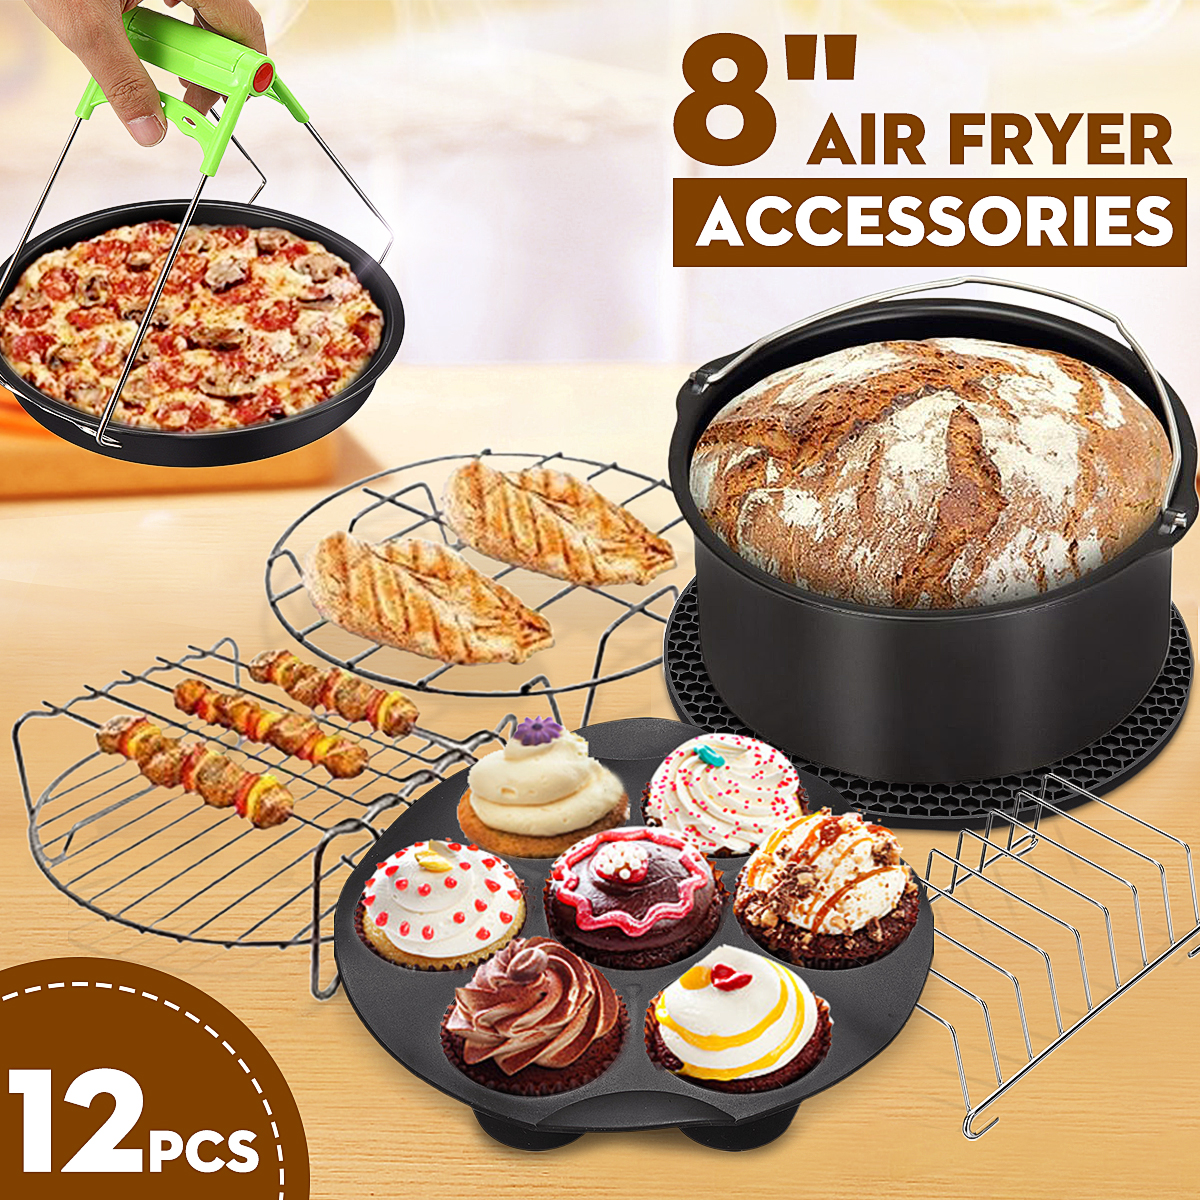 12pcs Air Fryer Accessories 8 Inch Fit for Airfryer 5.2 5.8QT Baking Basket Pizza Plate Grill Pot Kitchen Cooking Tool for Party